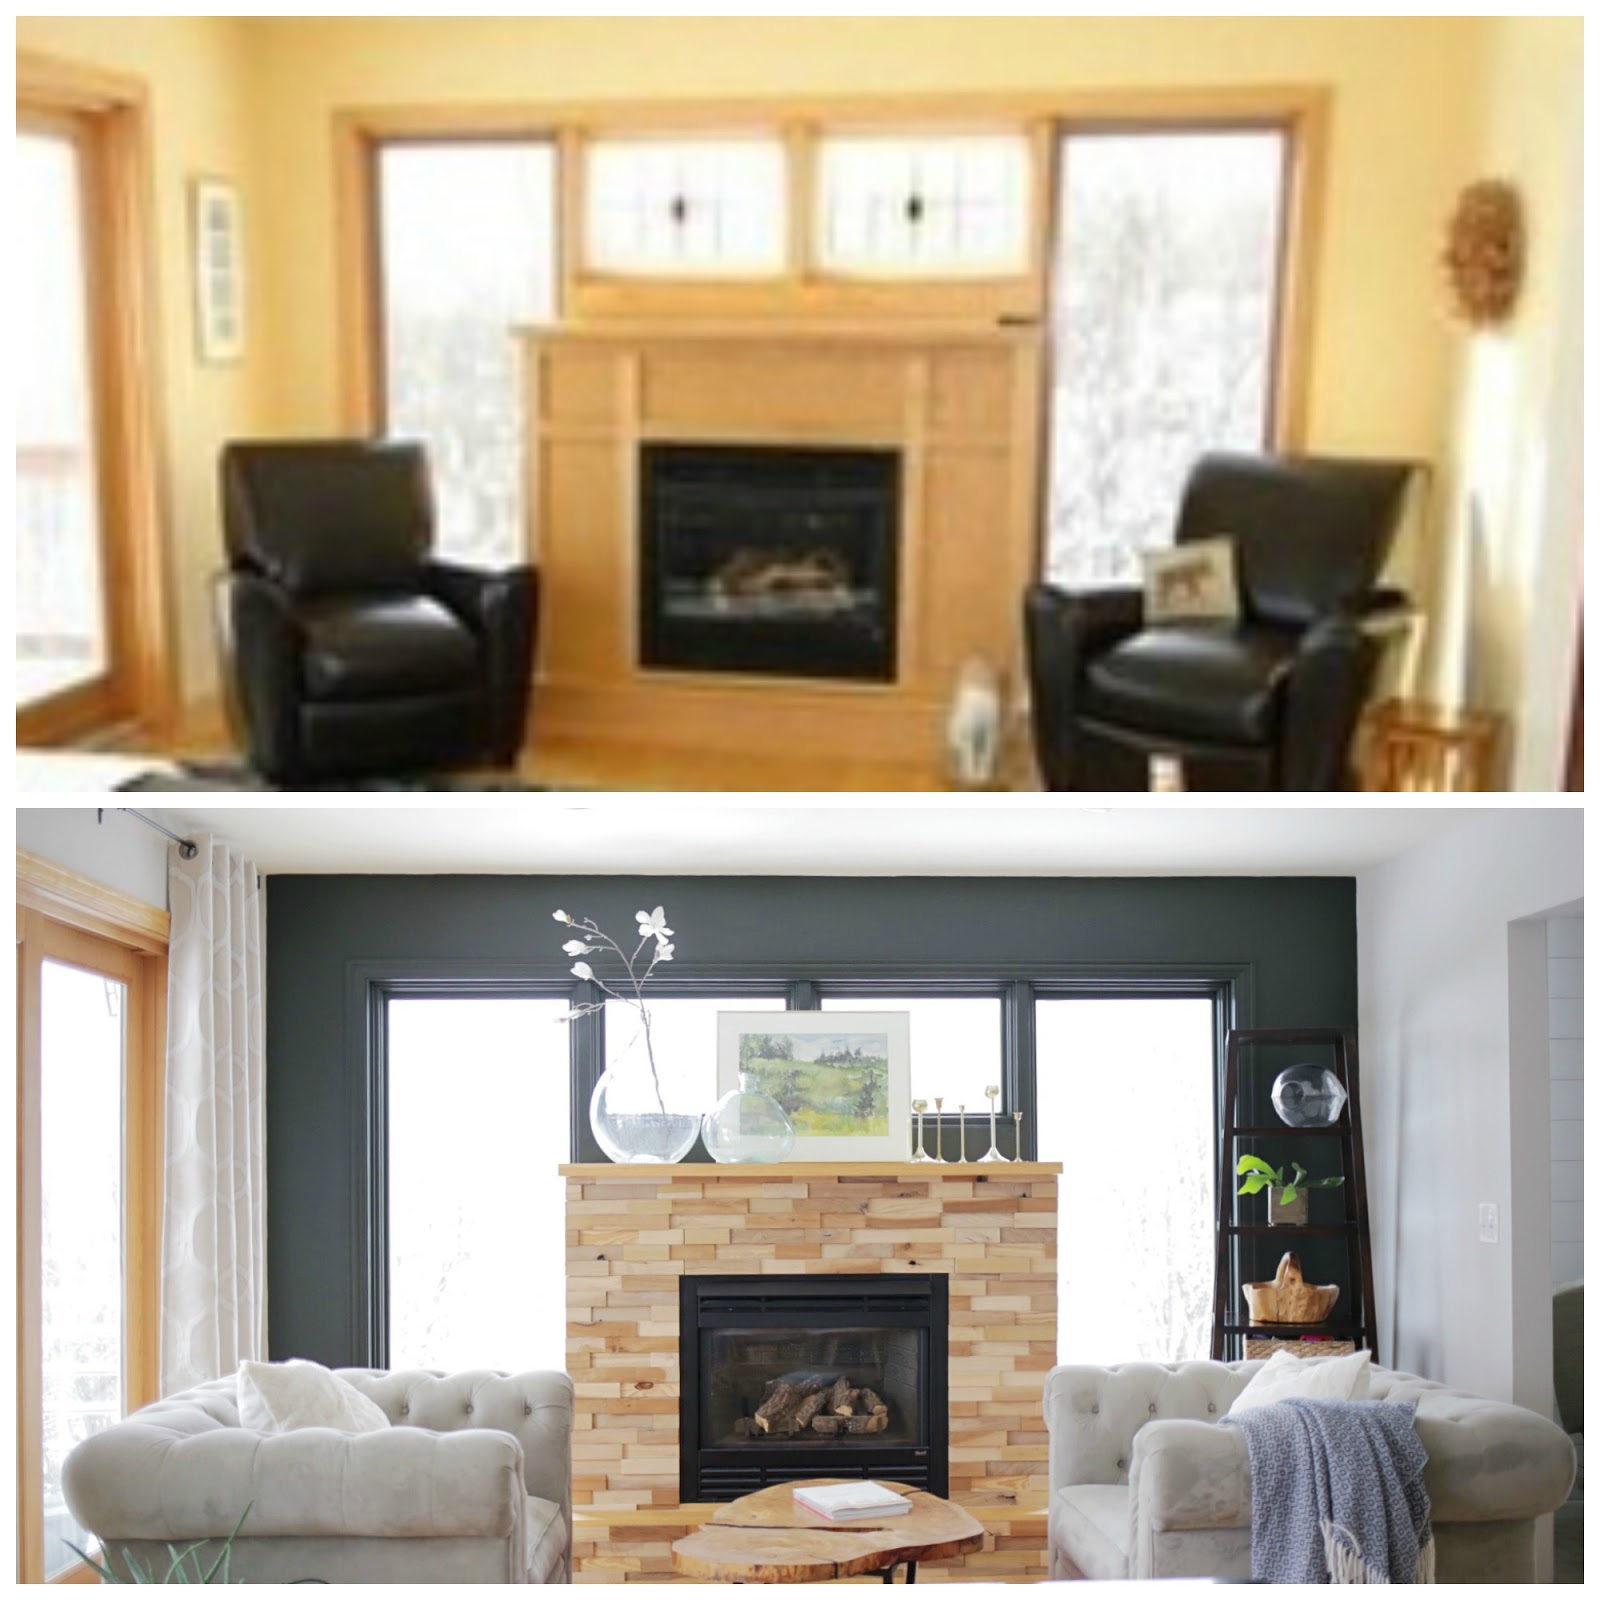 An Upcylced Fireplace Facelift A Before And After